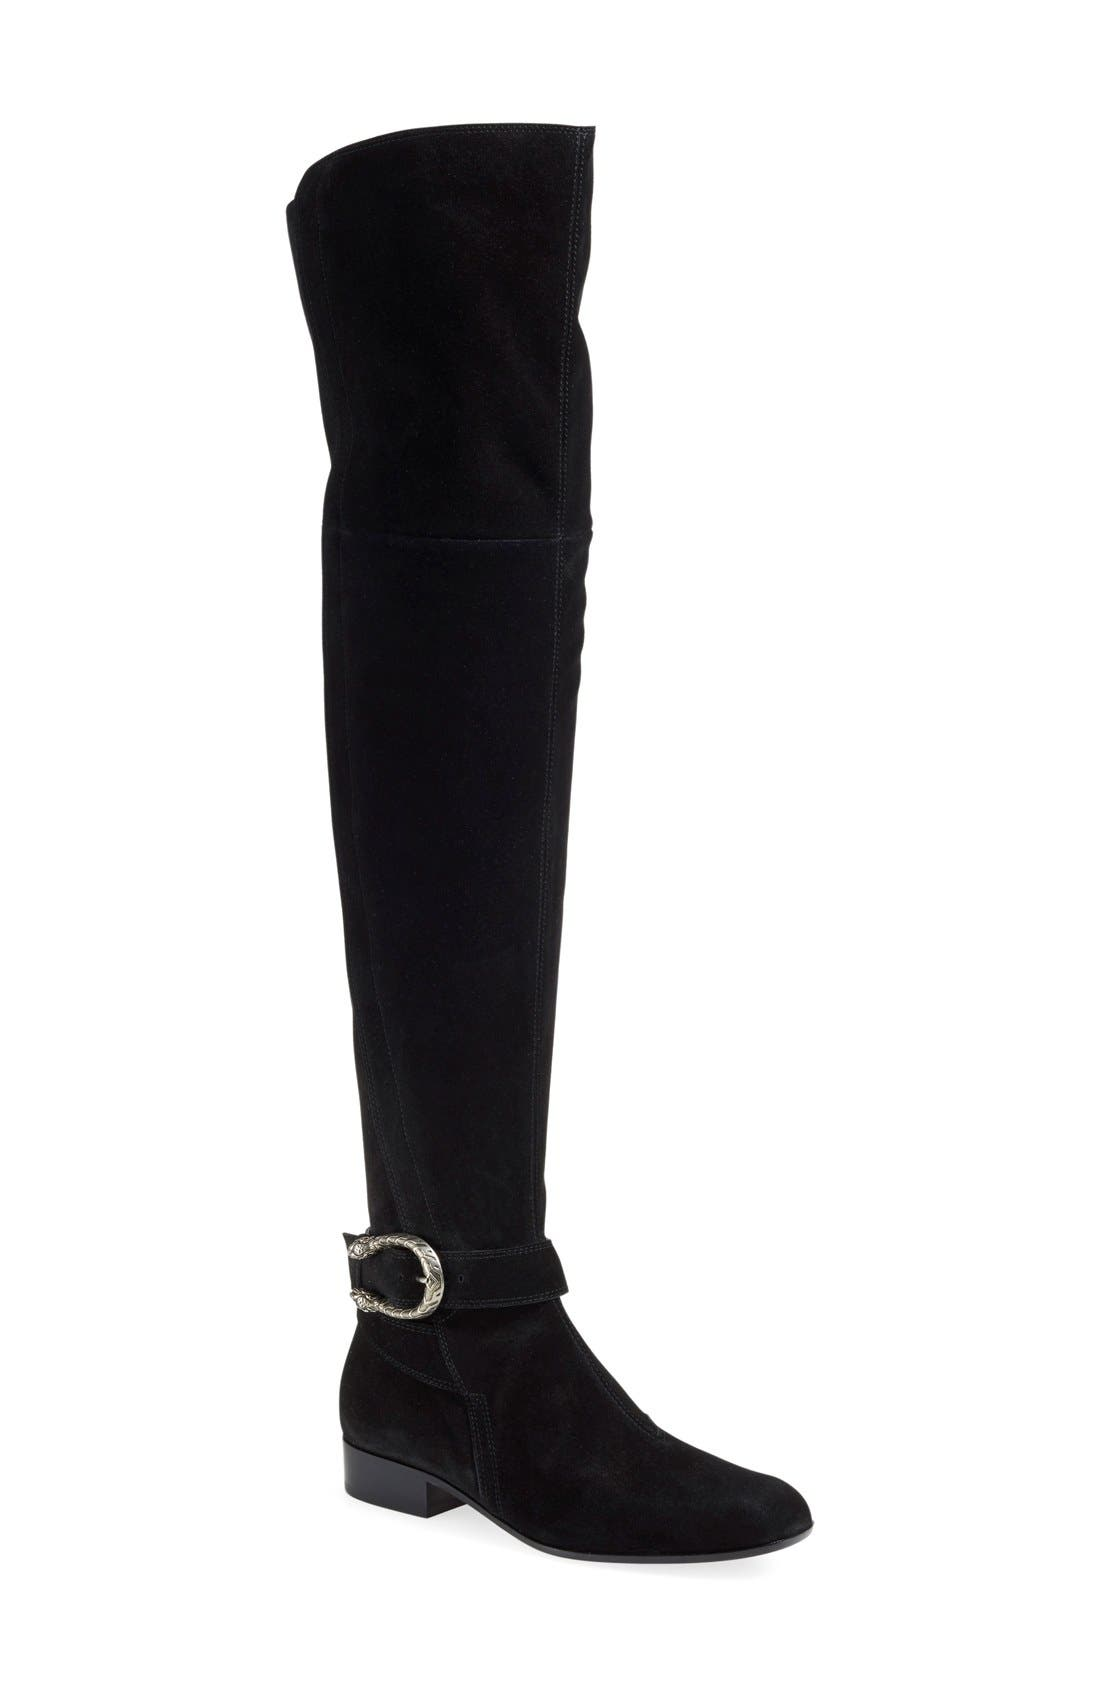 Main Image - Gucci 'Dionysus' Over the Knee Boot (Women)